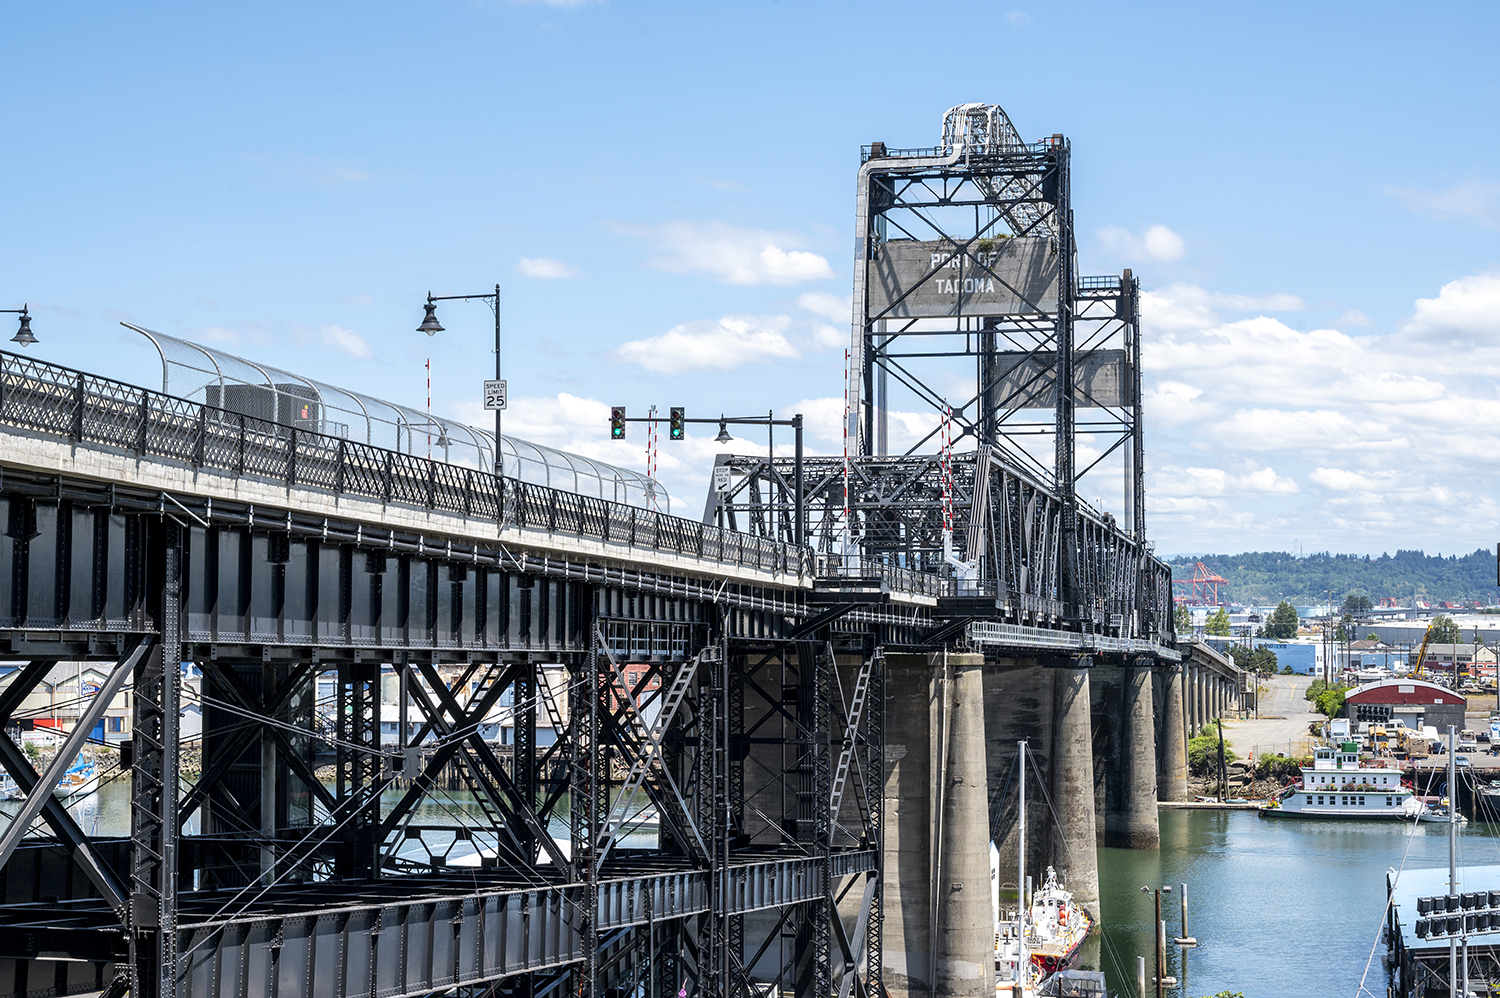 Opened in 1911, the Murray Morgan Bridge, also known as the 11th Street Bridge, is a vertical-lift bridge and considered a Tacoma, Washington icon. This unique type of lift bridge rises vertically while remaining parallel with the deck. (Image: Rachael Jones / Seattle Refined)